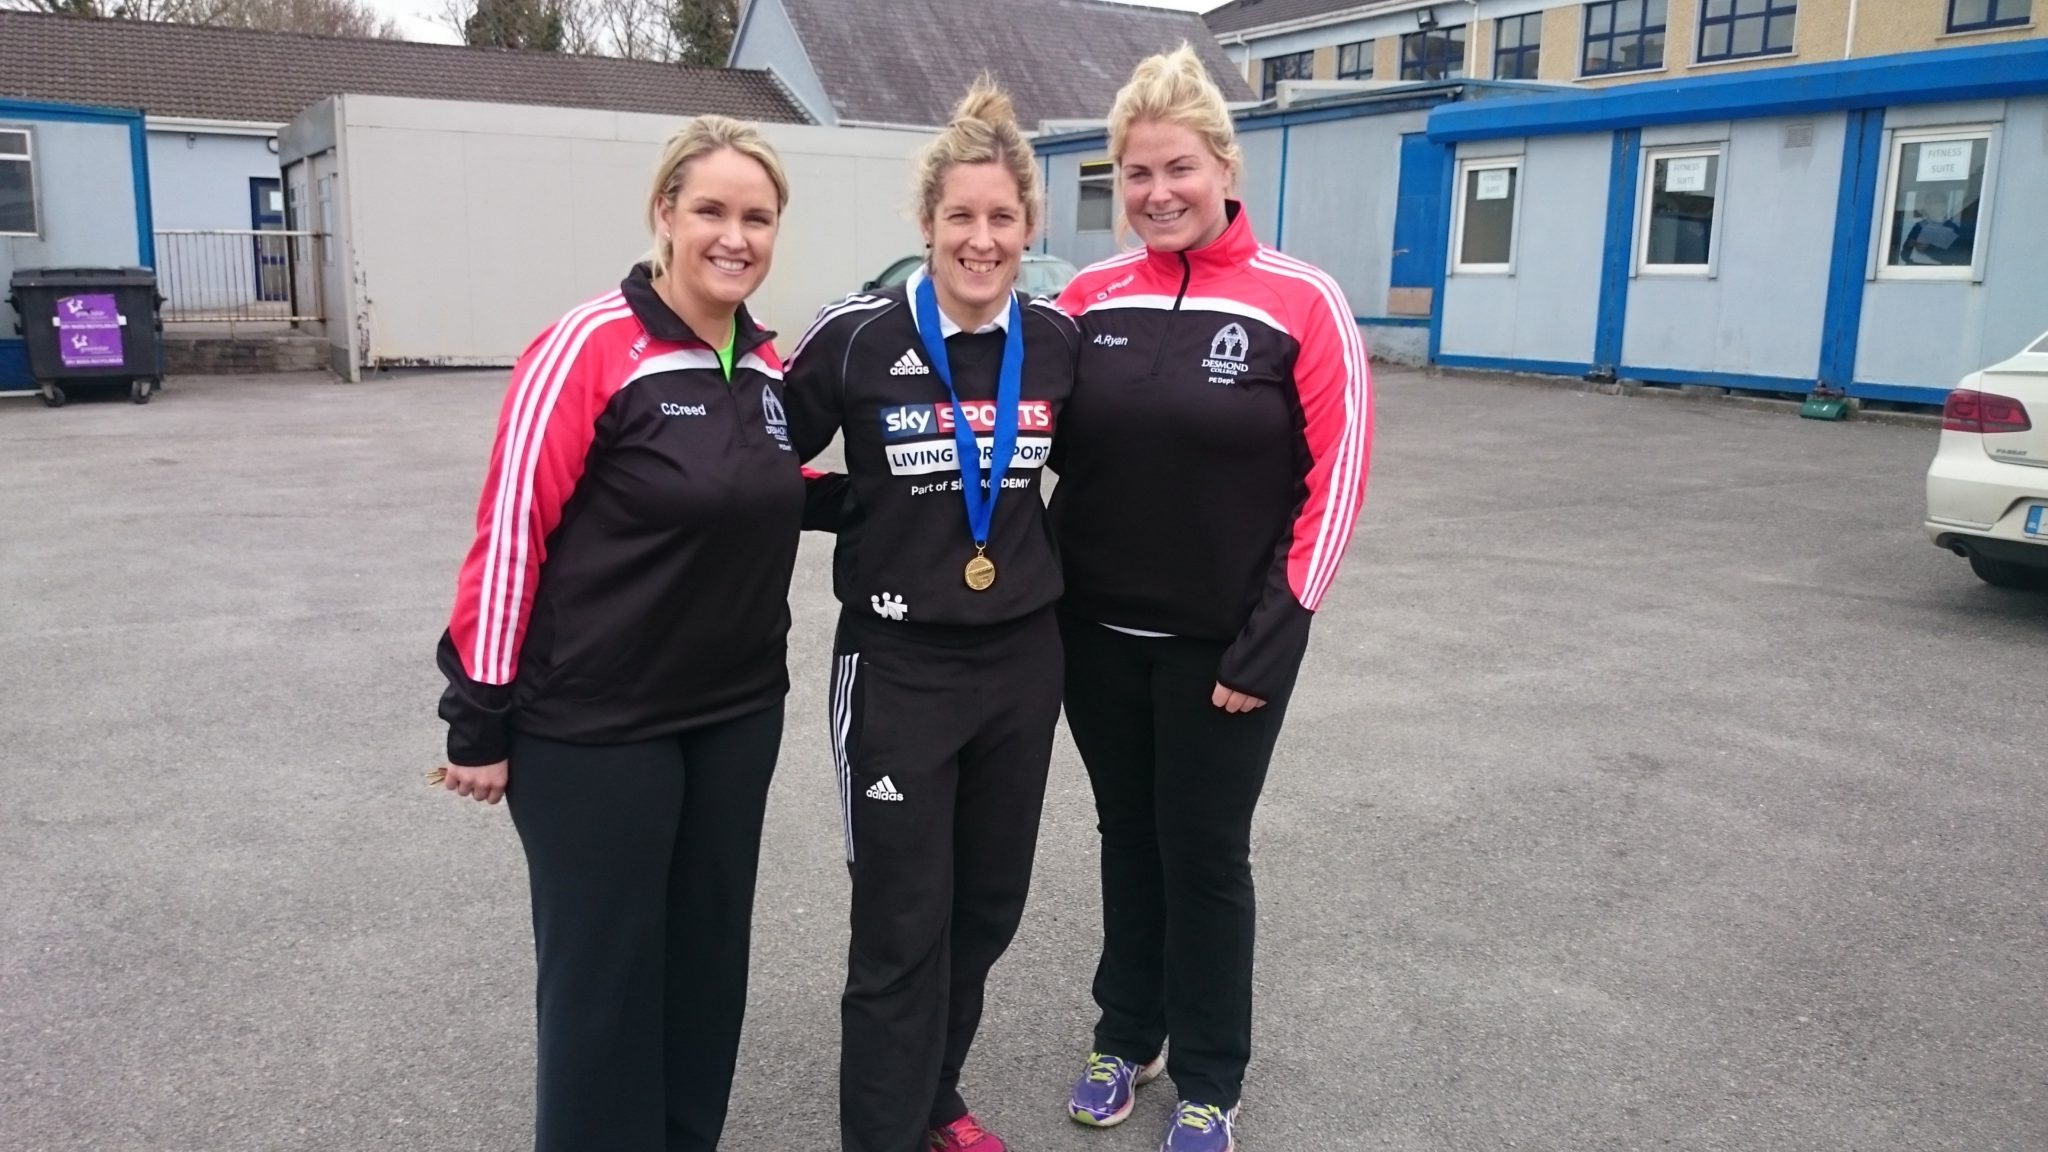 Ms Creed and Ms Ryan part of the PE Department with Alison Miller Irish Rugby Player for Desmond College's Active Schools Week April 2015